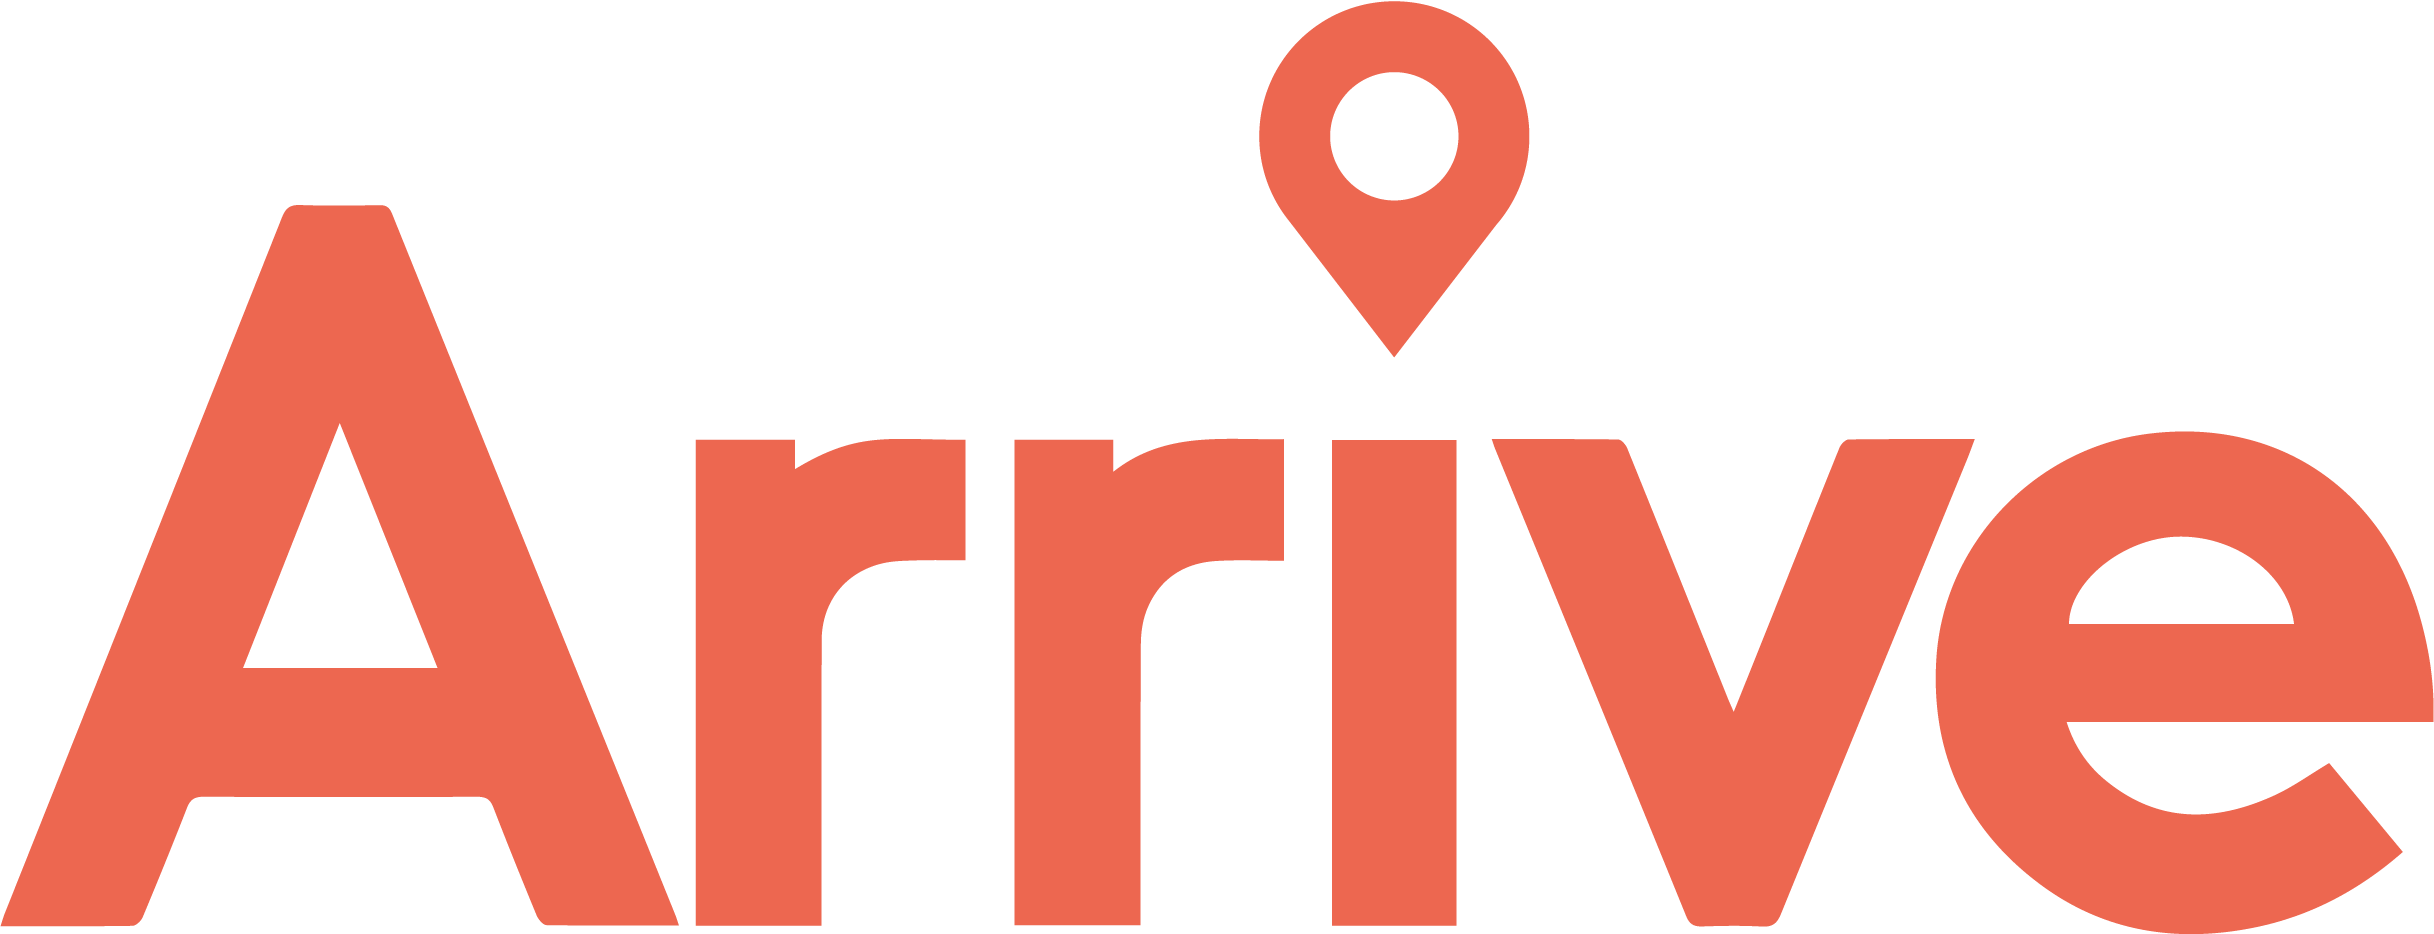 Arrive-logo-red.jpg